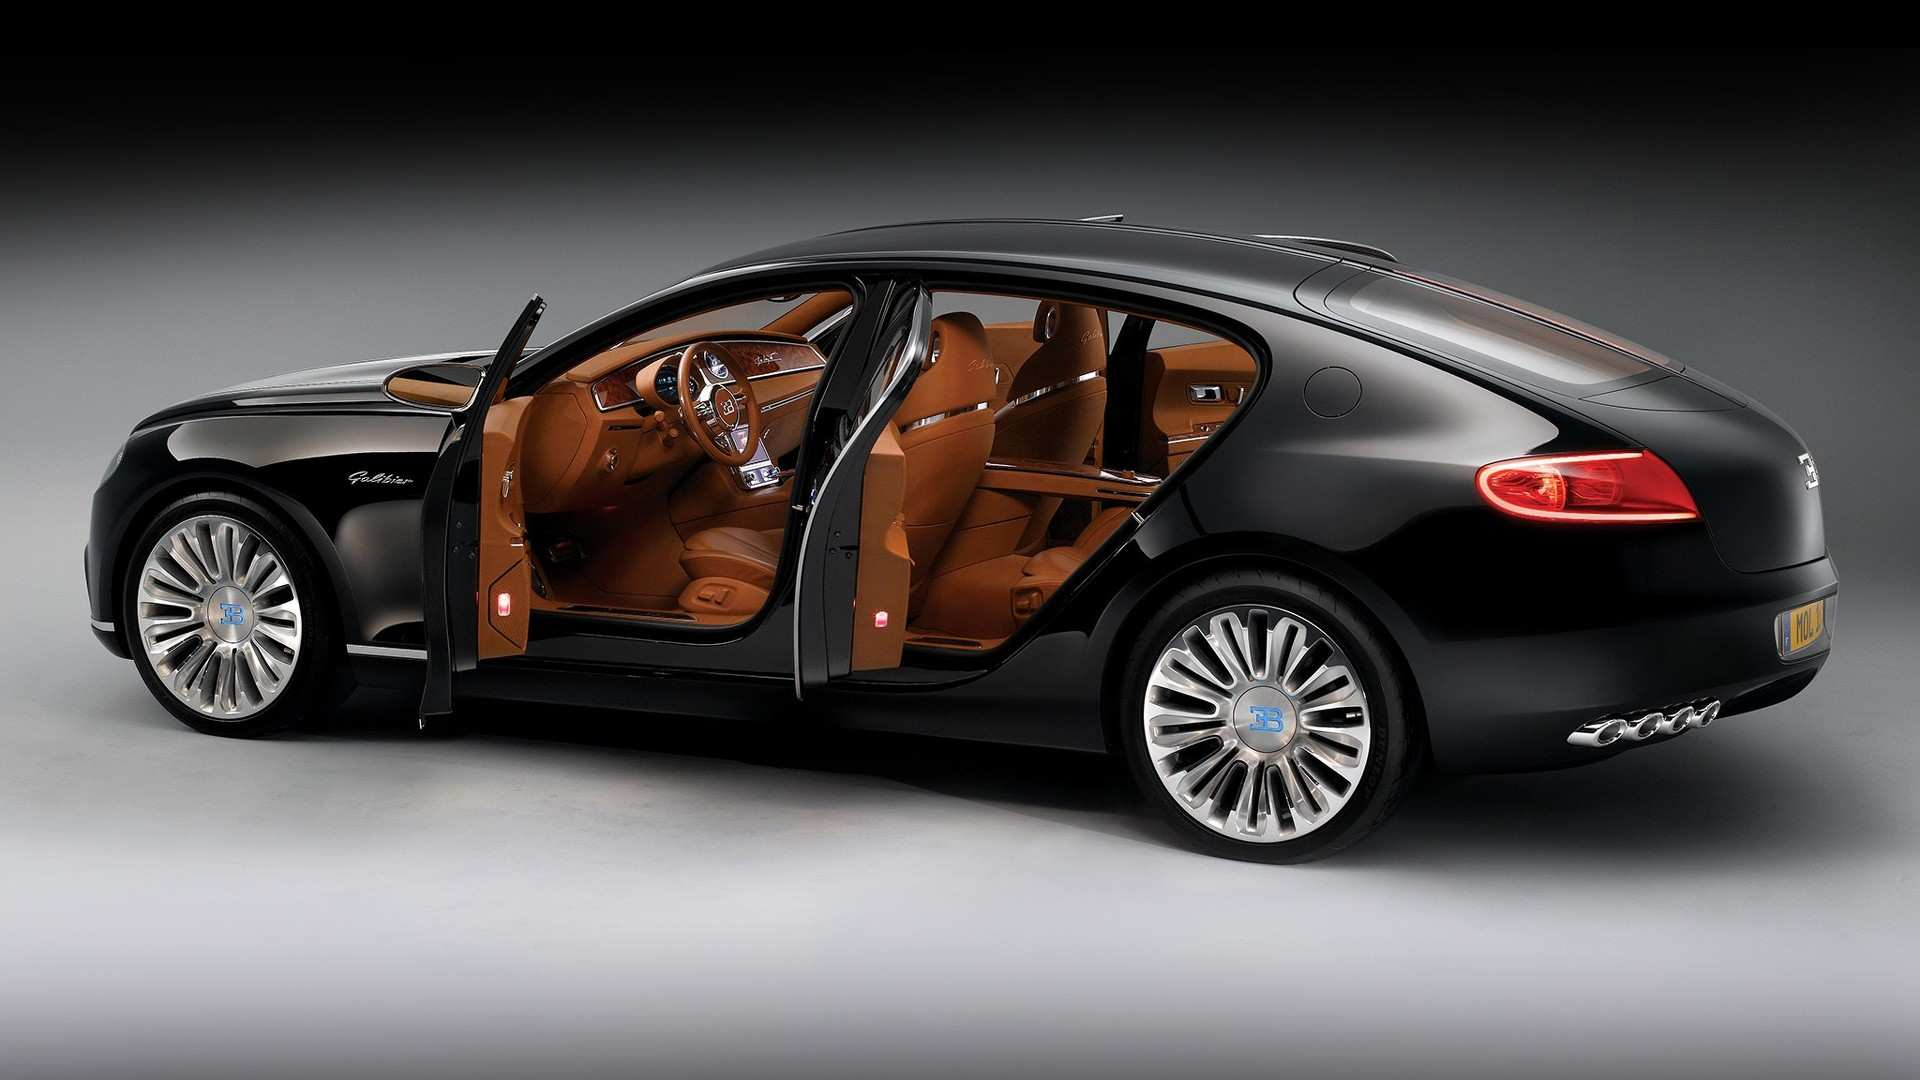 78 The Best Bugatti Galibier 2020 Price Design And Review